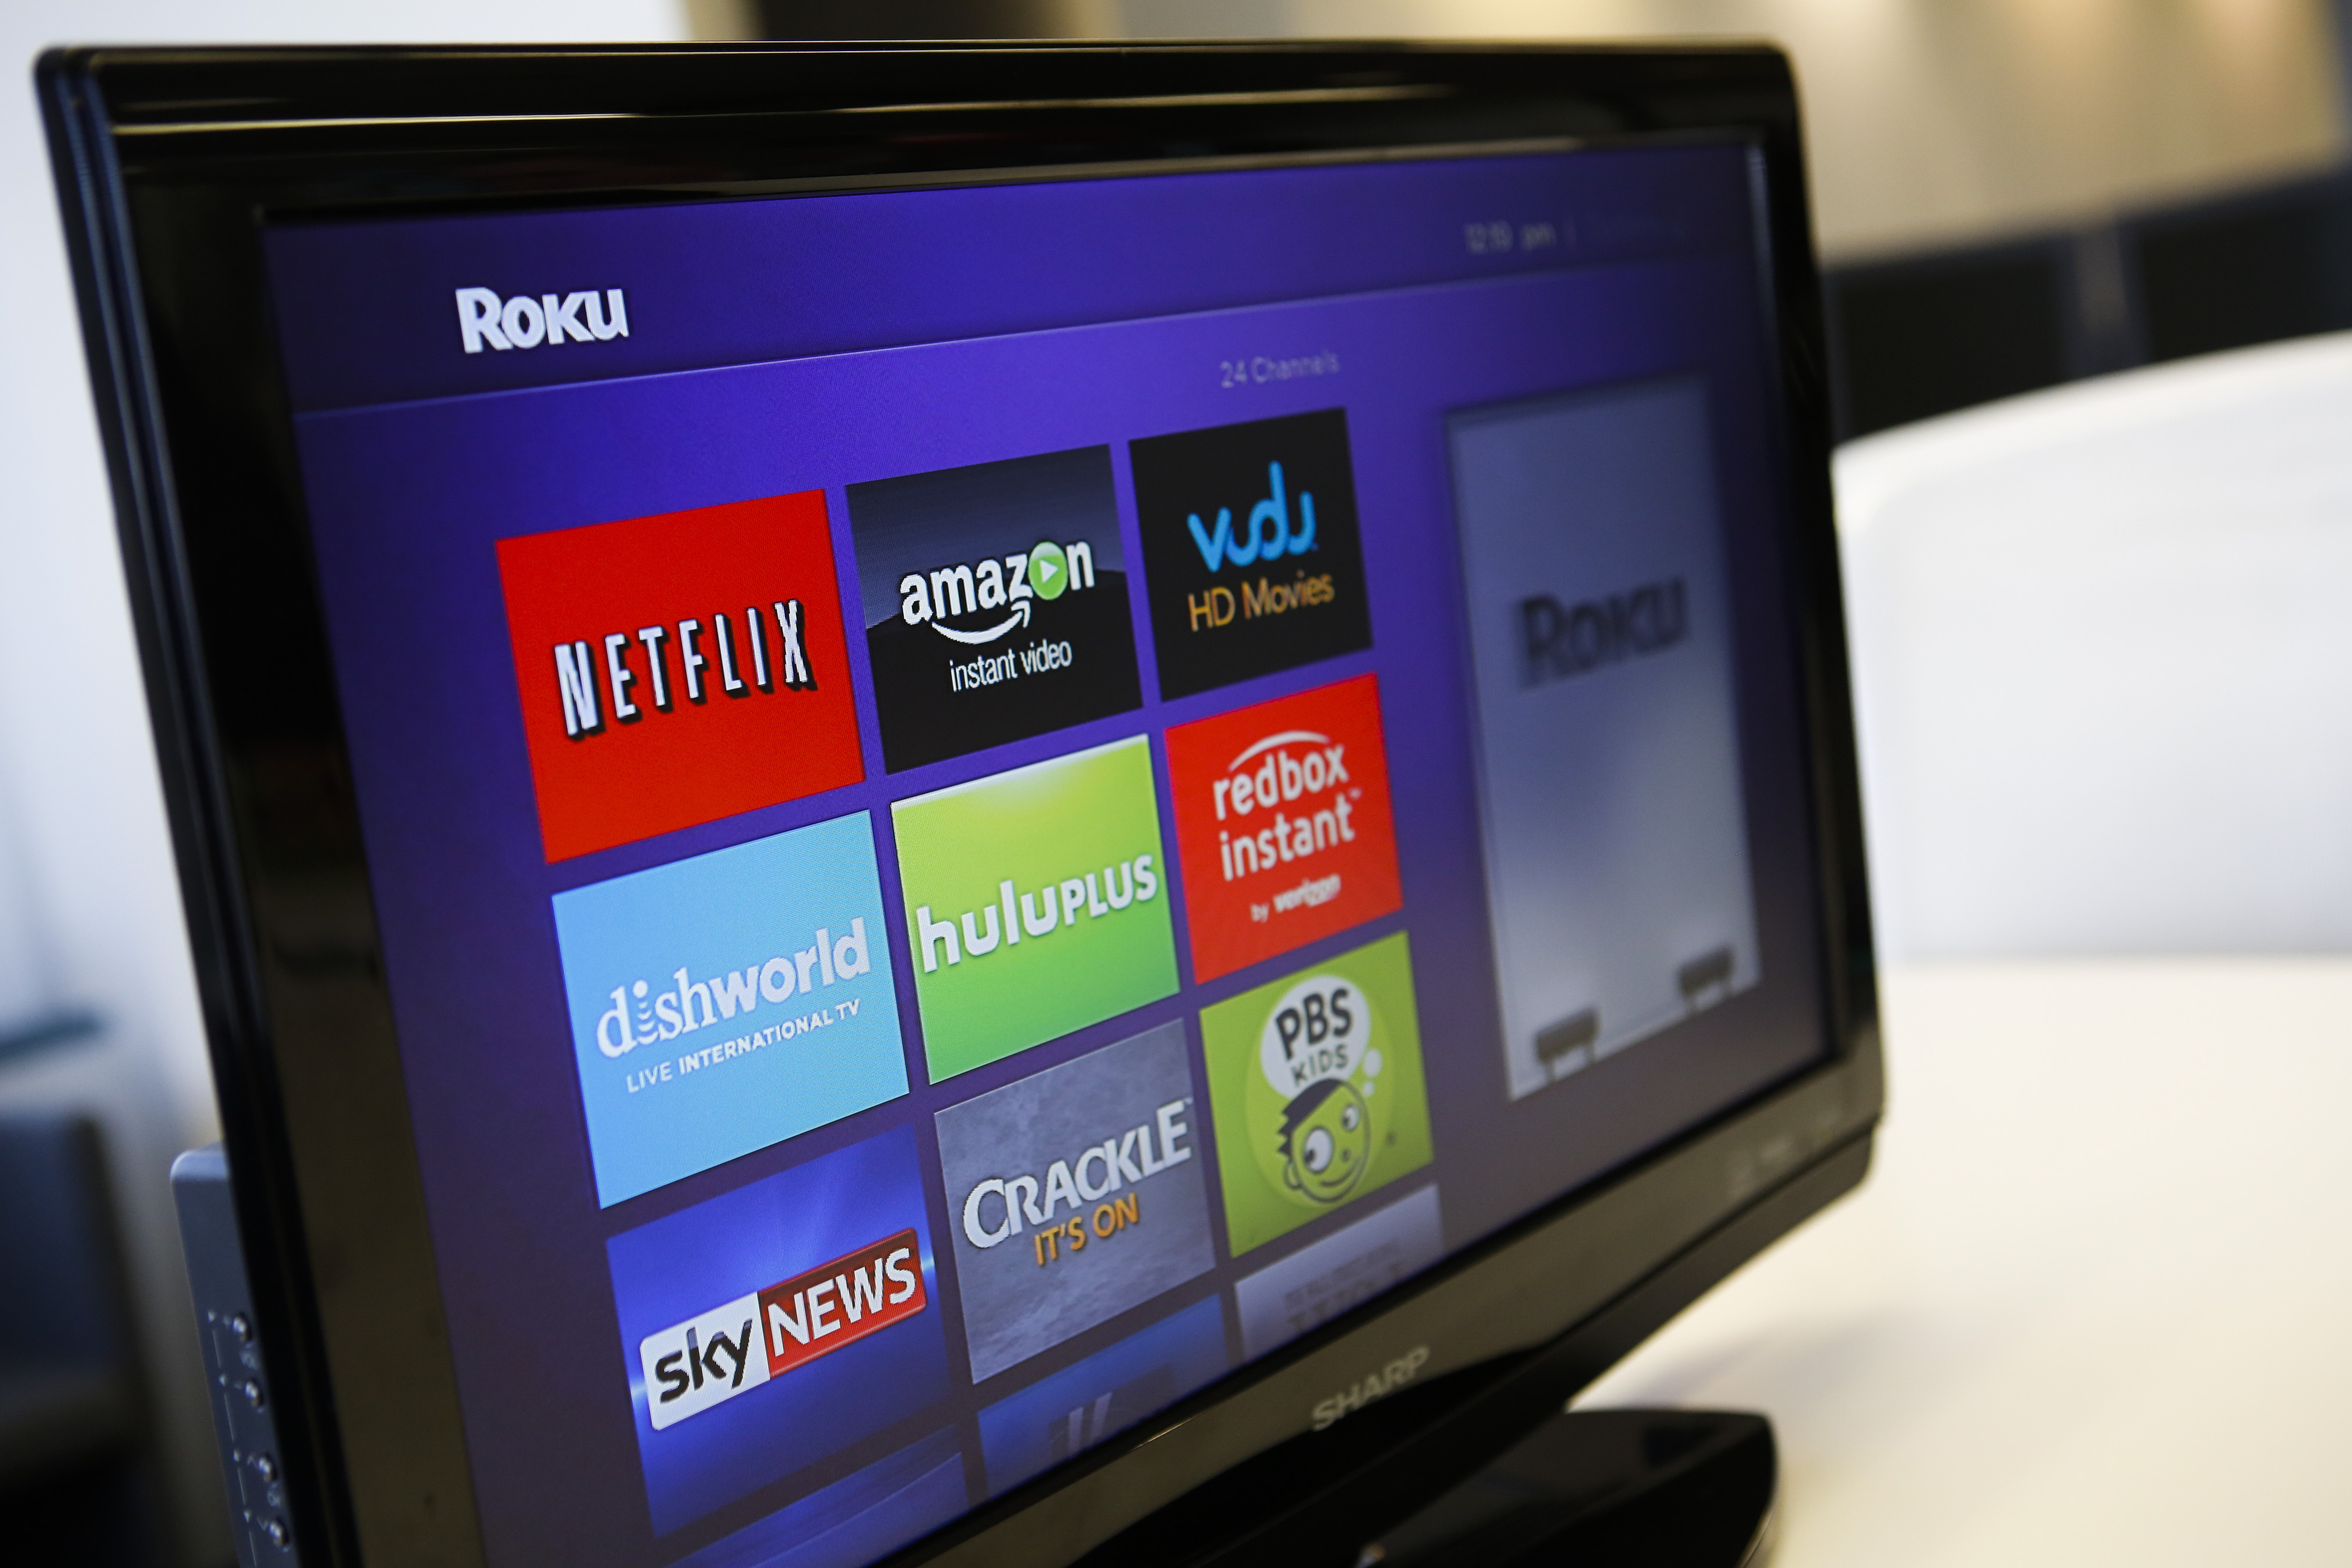 The Roku 3 television streaming player menu screen featuring Netflix, Amazon, Vudu, Hulu, and Redbox Instant is shown on a television in Los Angeles on Sept. 12, 2013.